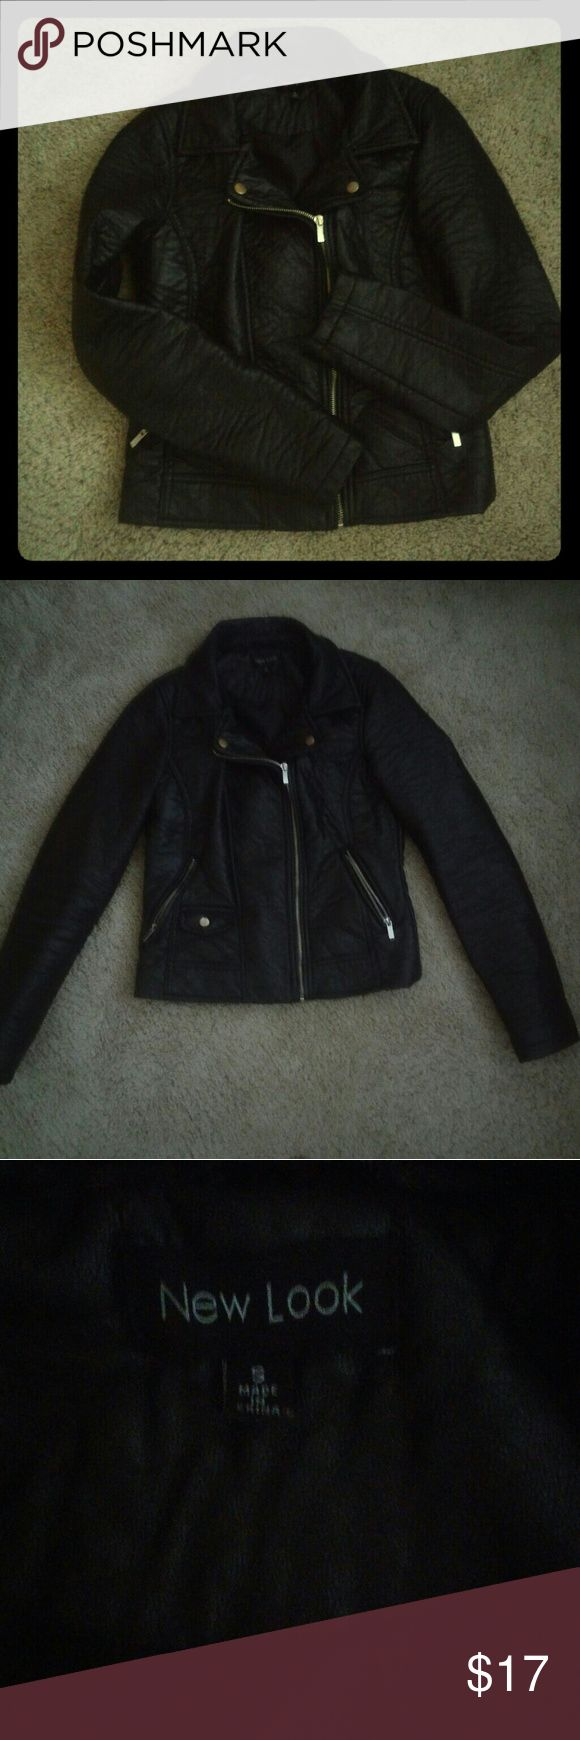 New Look Biker Leather Jacket Like new and 100%leather. Its very stylish New Look Jackets & Coats